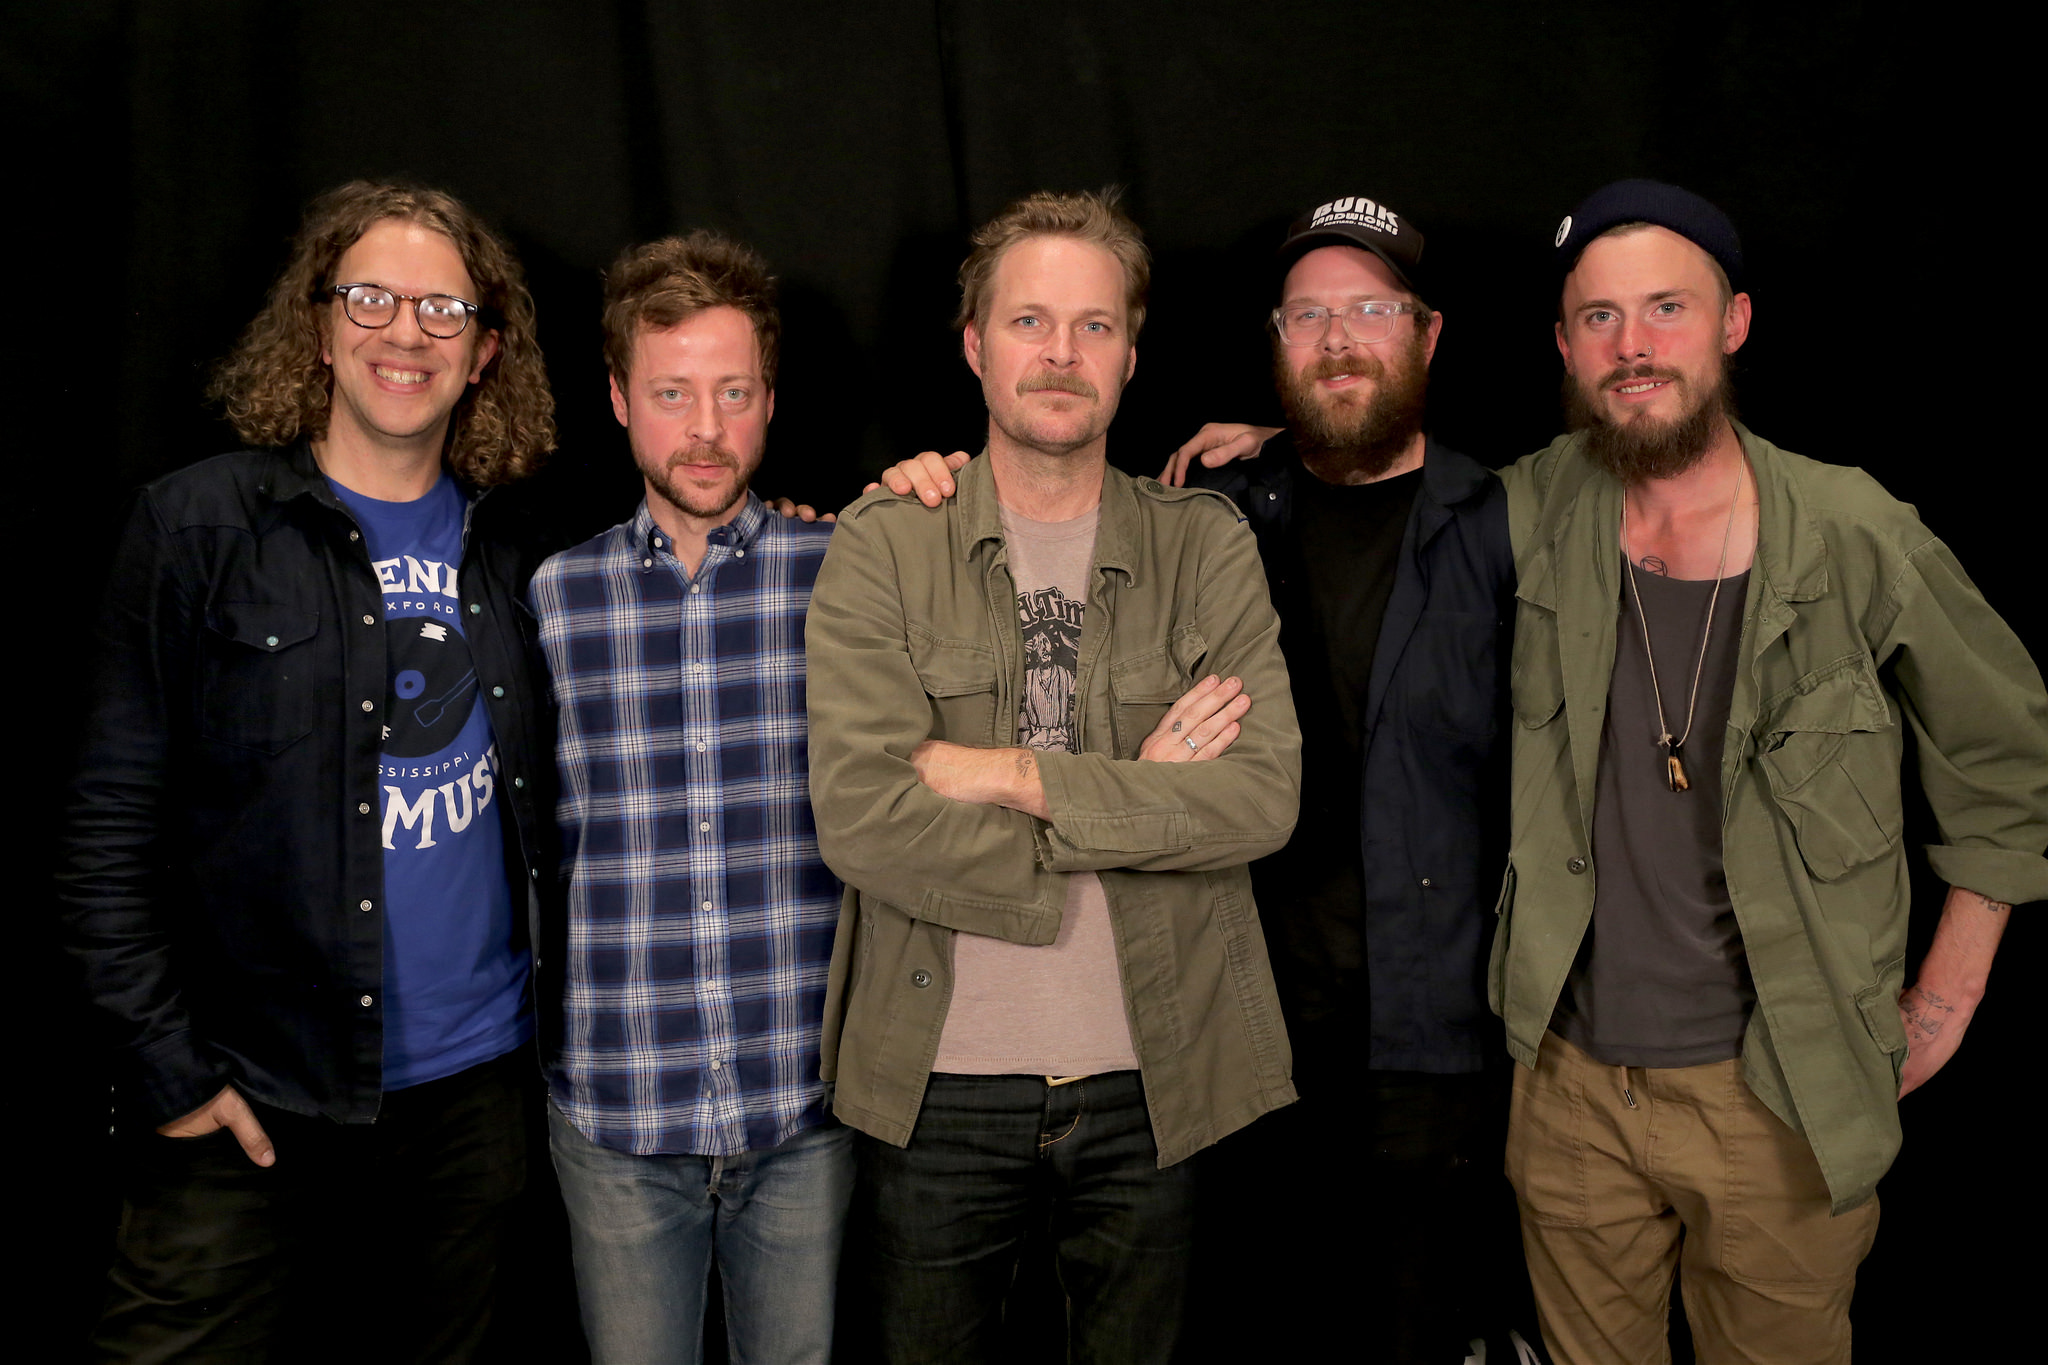 Hiss Golden Messenger at WFUV